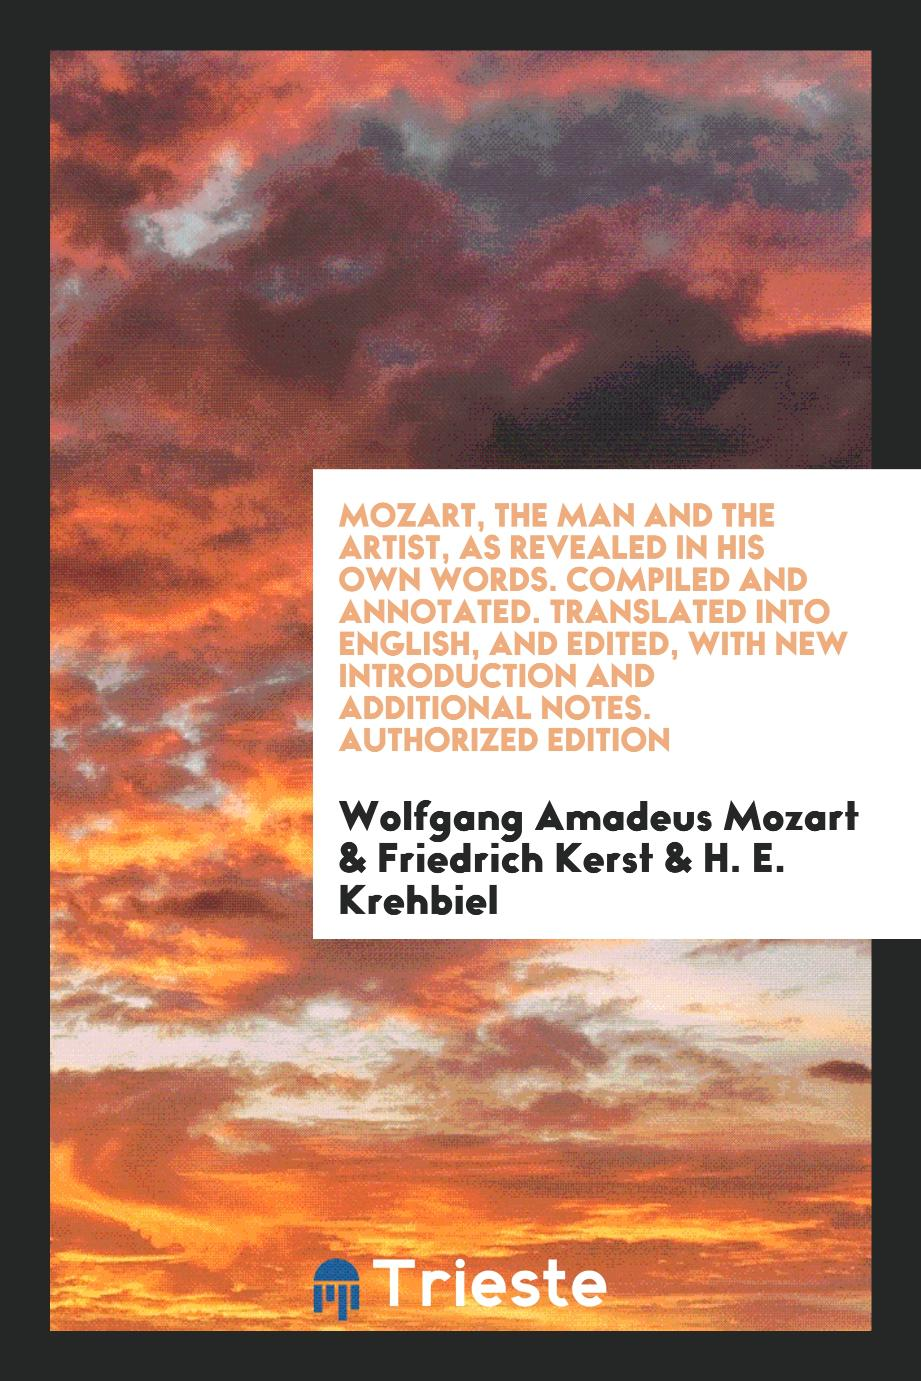 Mozart, the Man and the Artist, as Revealed in His Own Words. Compiled and Annotated. Translated into English, and Edited, with New Introduction and Additional Notes. Authorized Edition